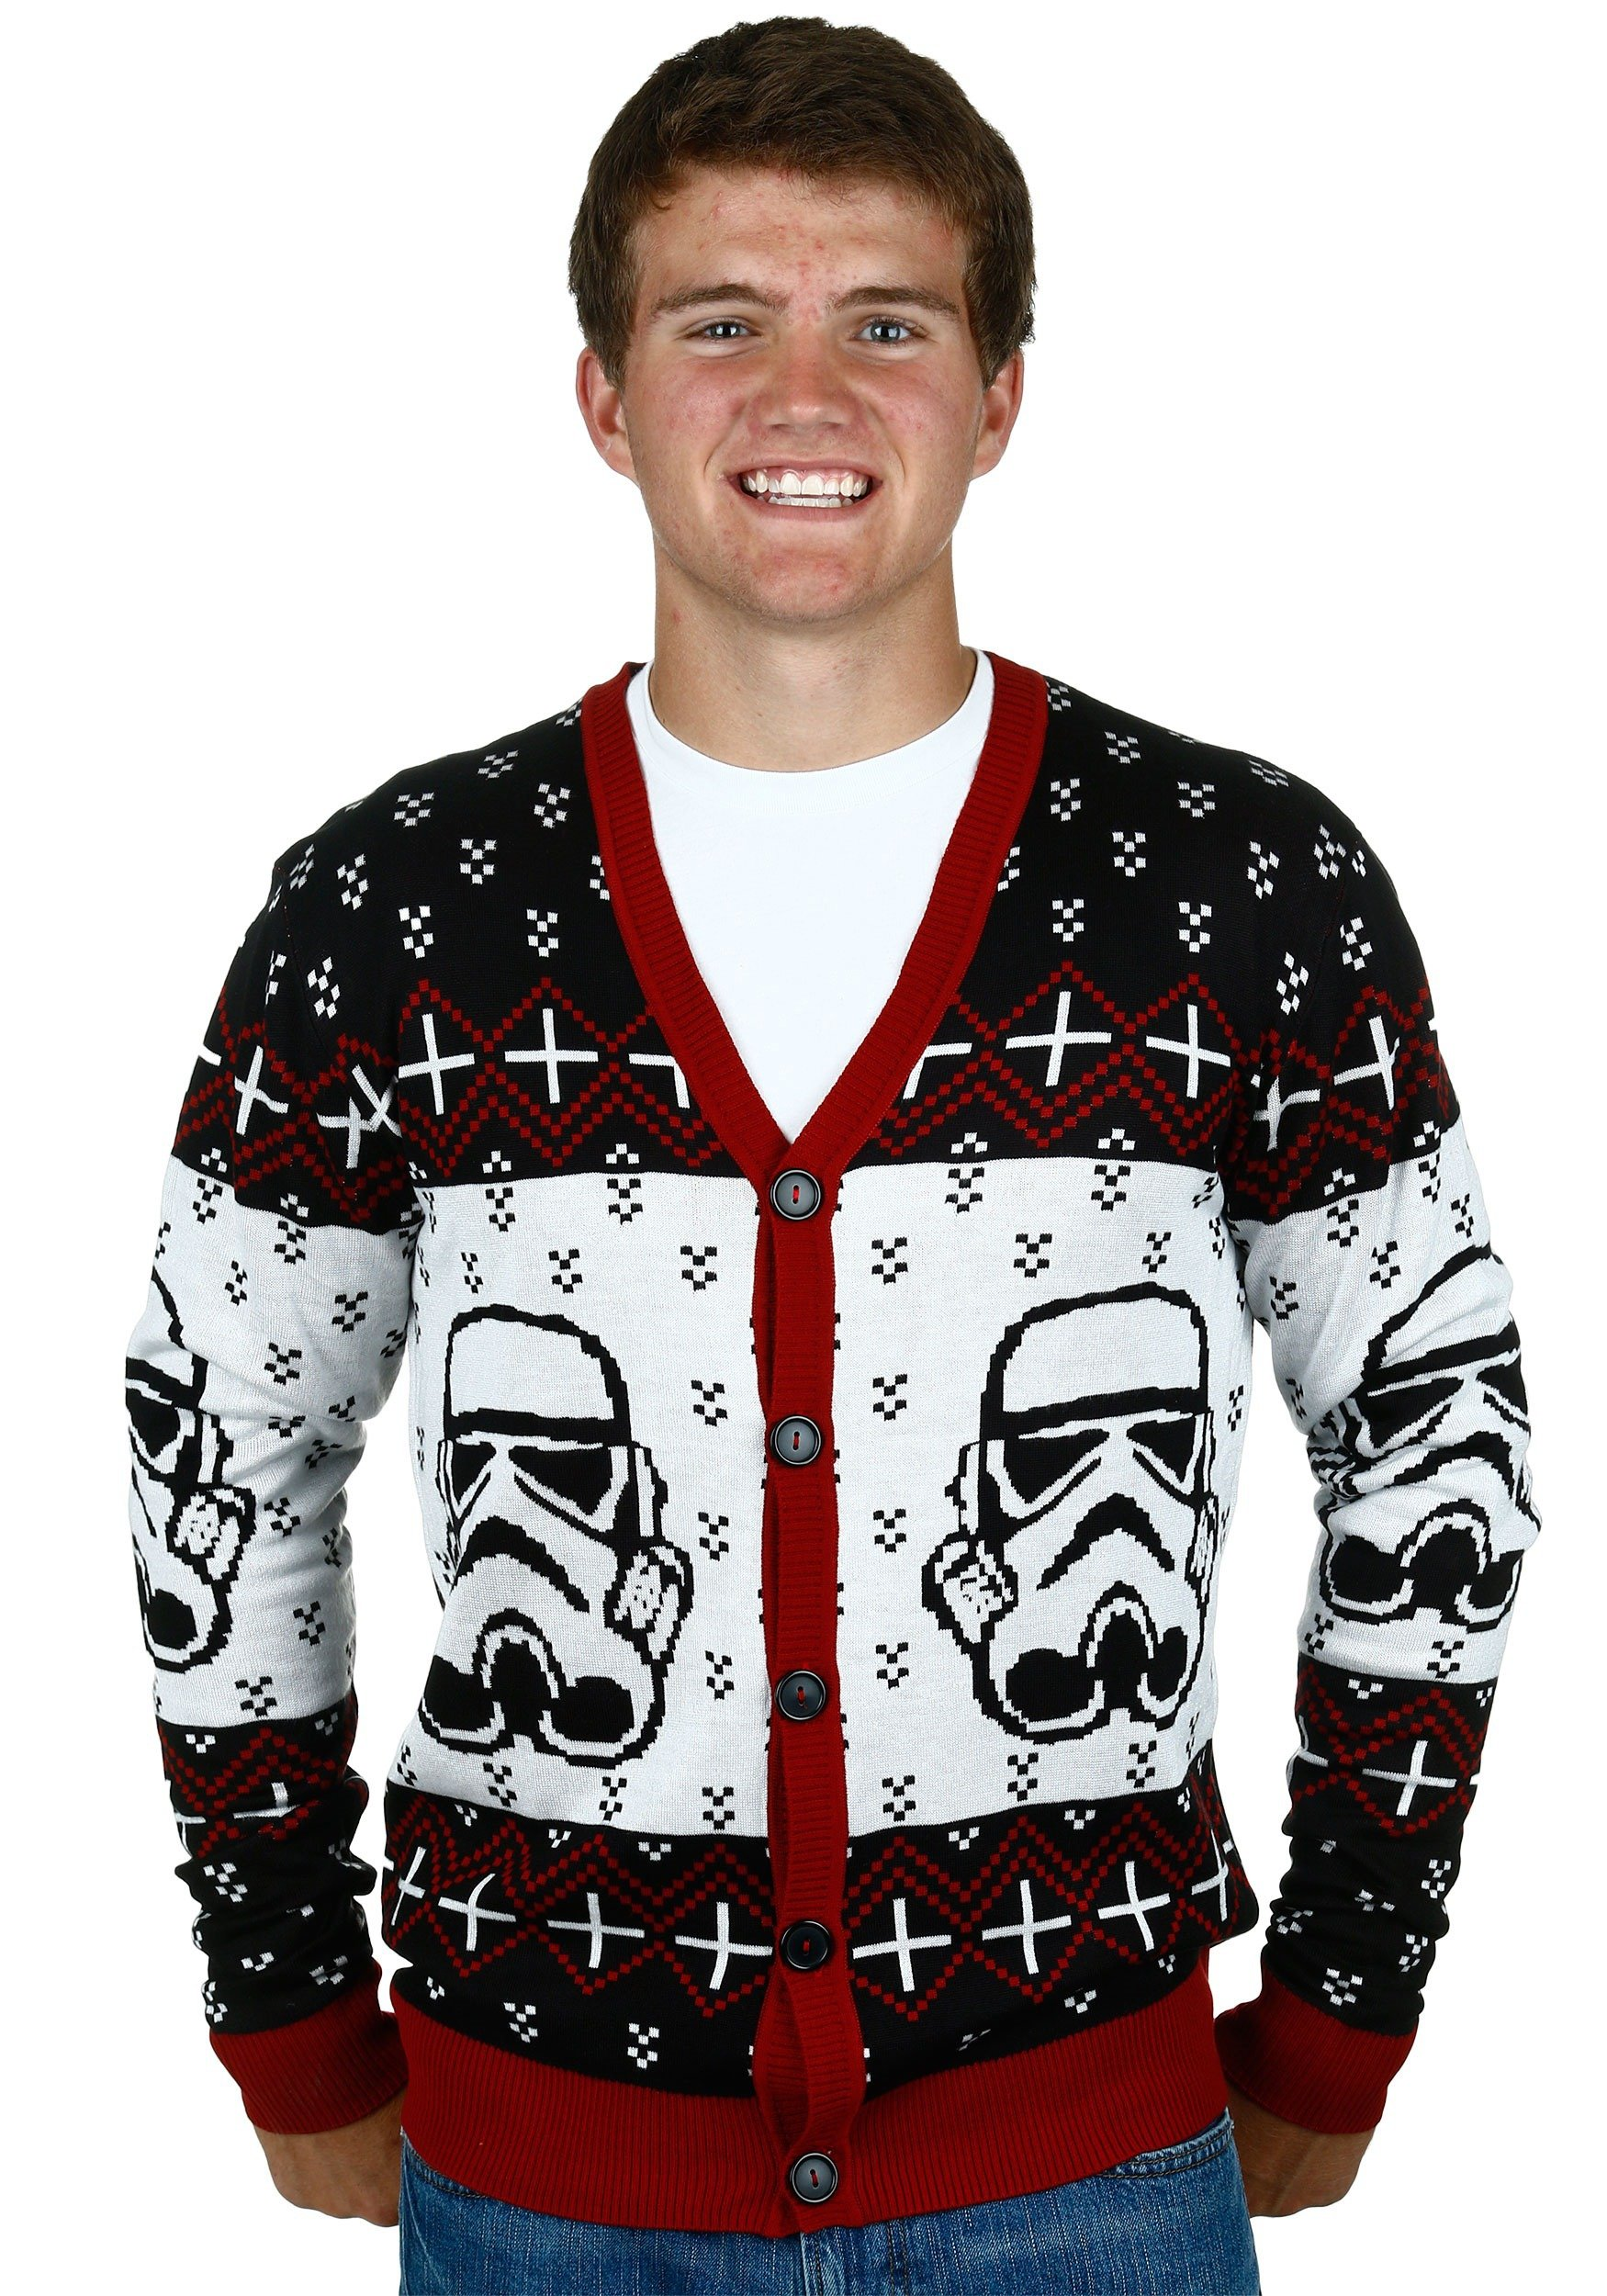 Star Wars Stormtrooper Men's Ugly Sweater Cardigan 2X